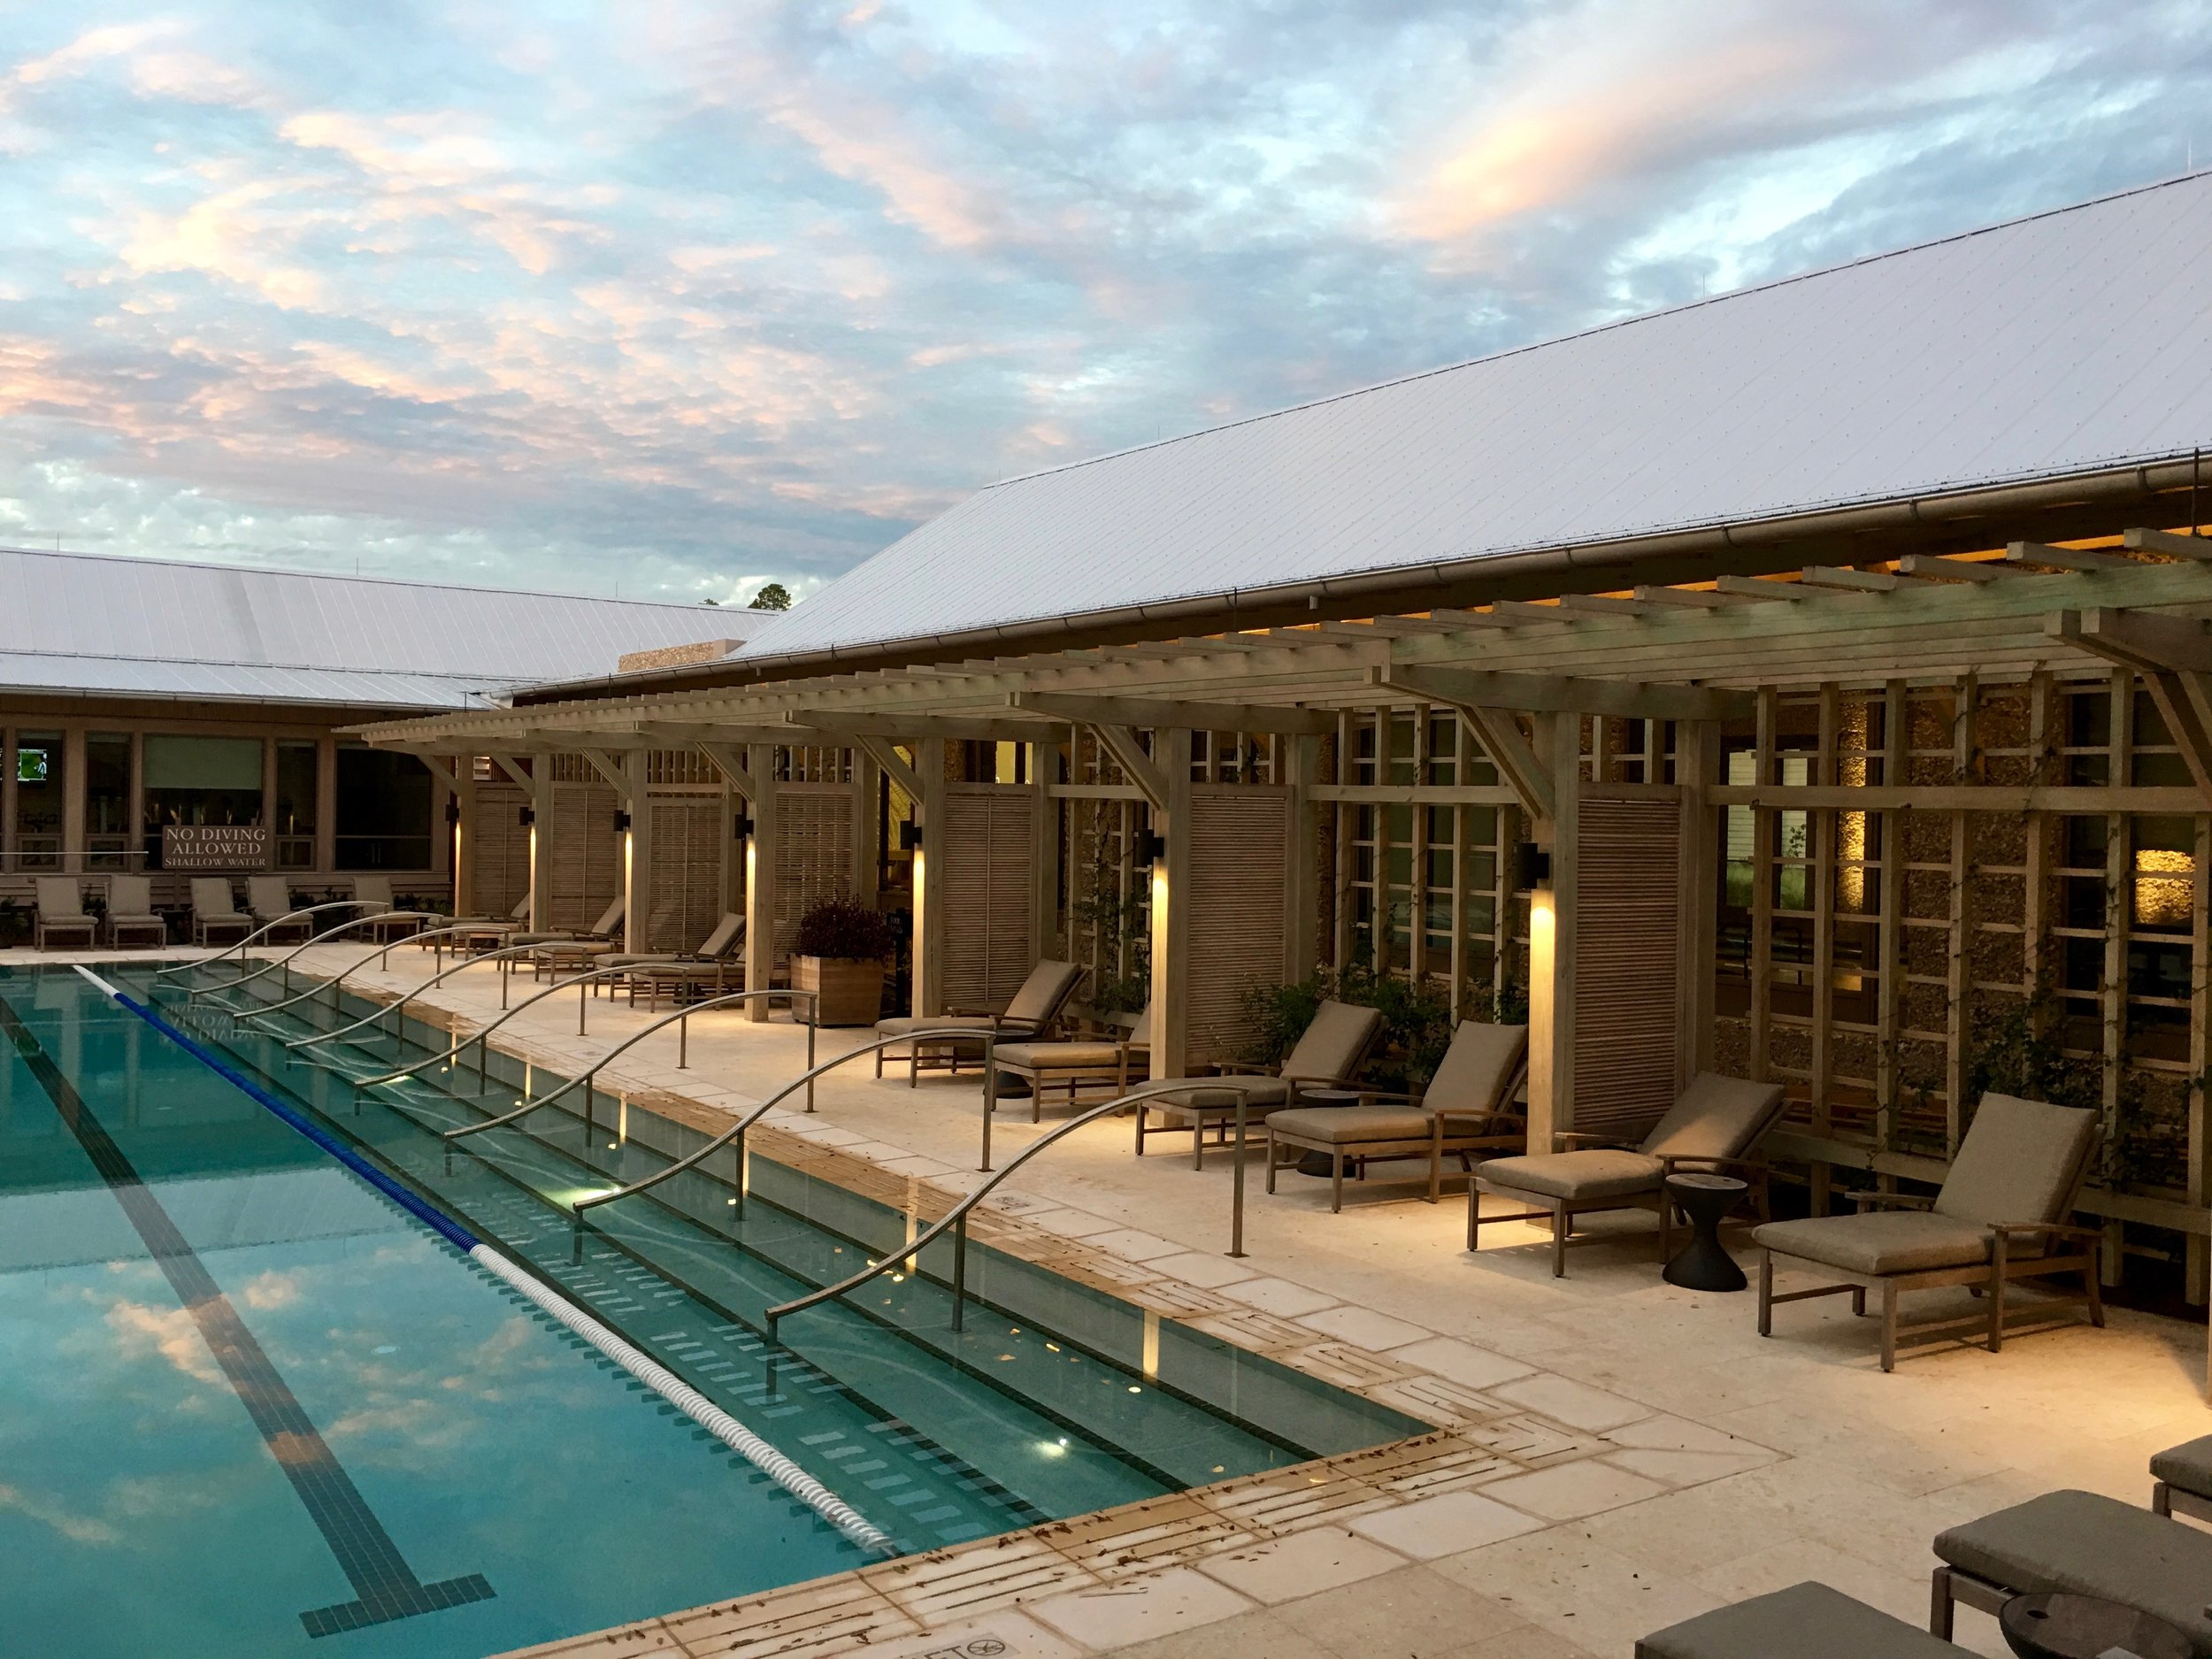 Love the serenity by the Moreland lap pool